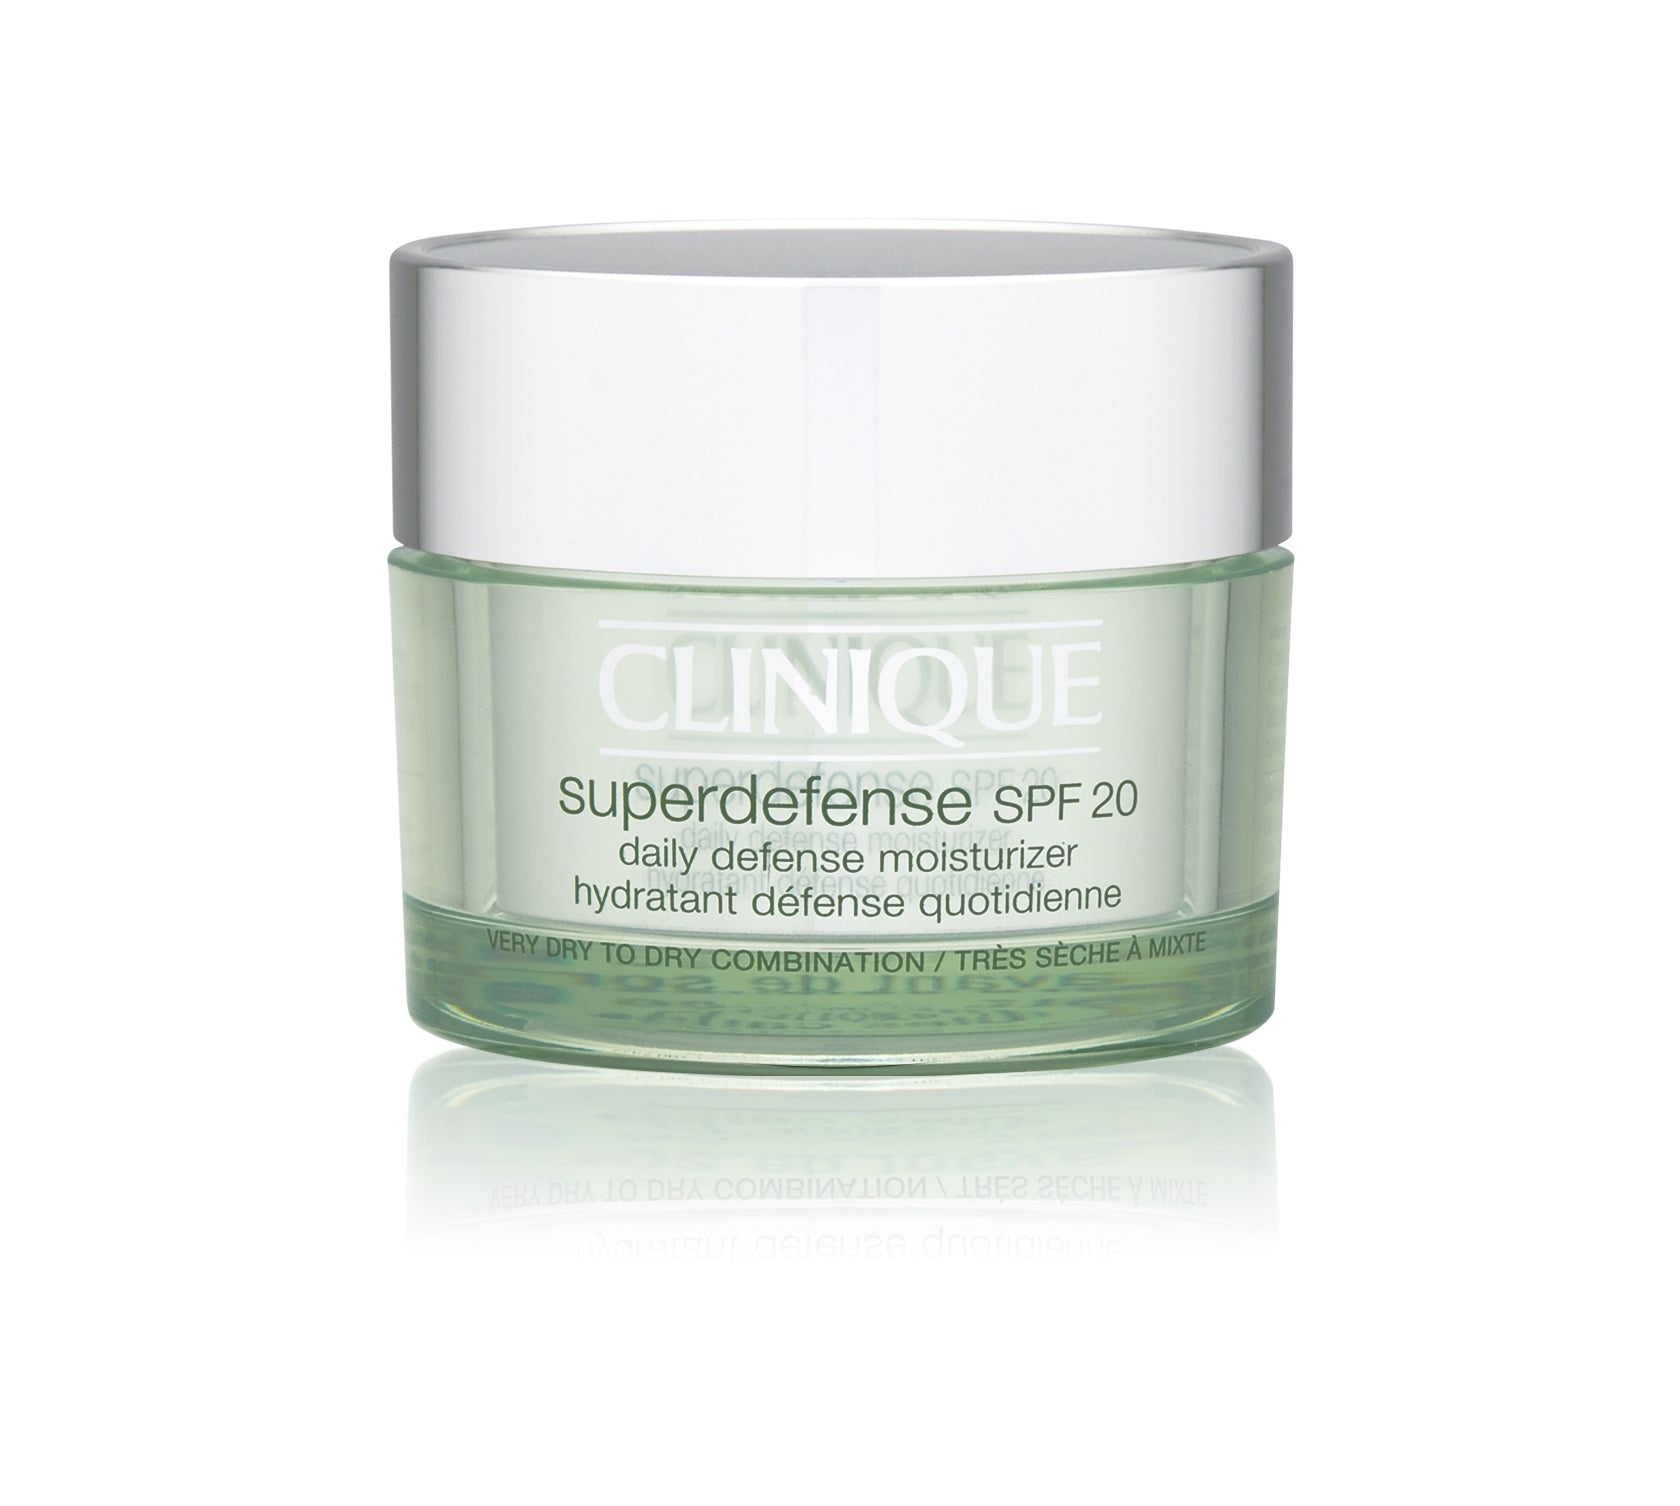 superdefense-spf20-daily-defense-moisturizer-very-dry-to-dry-combination